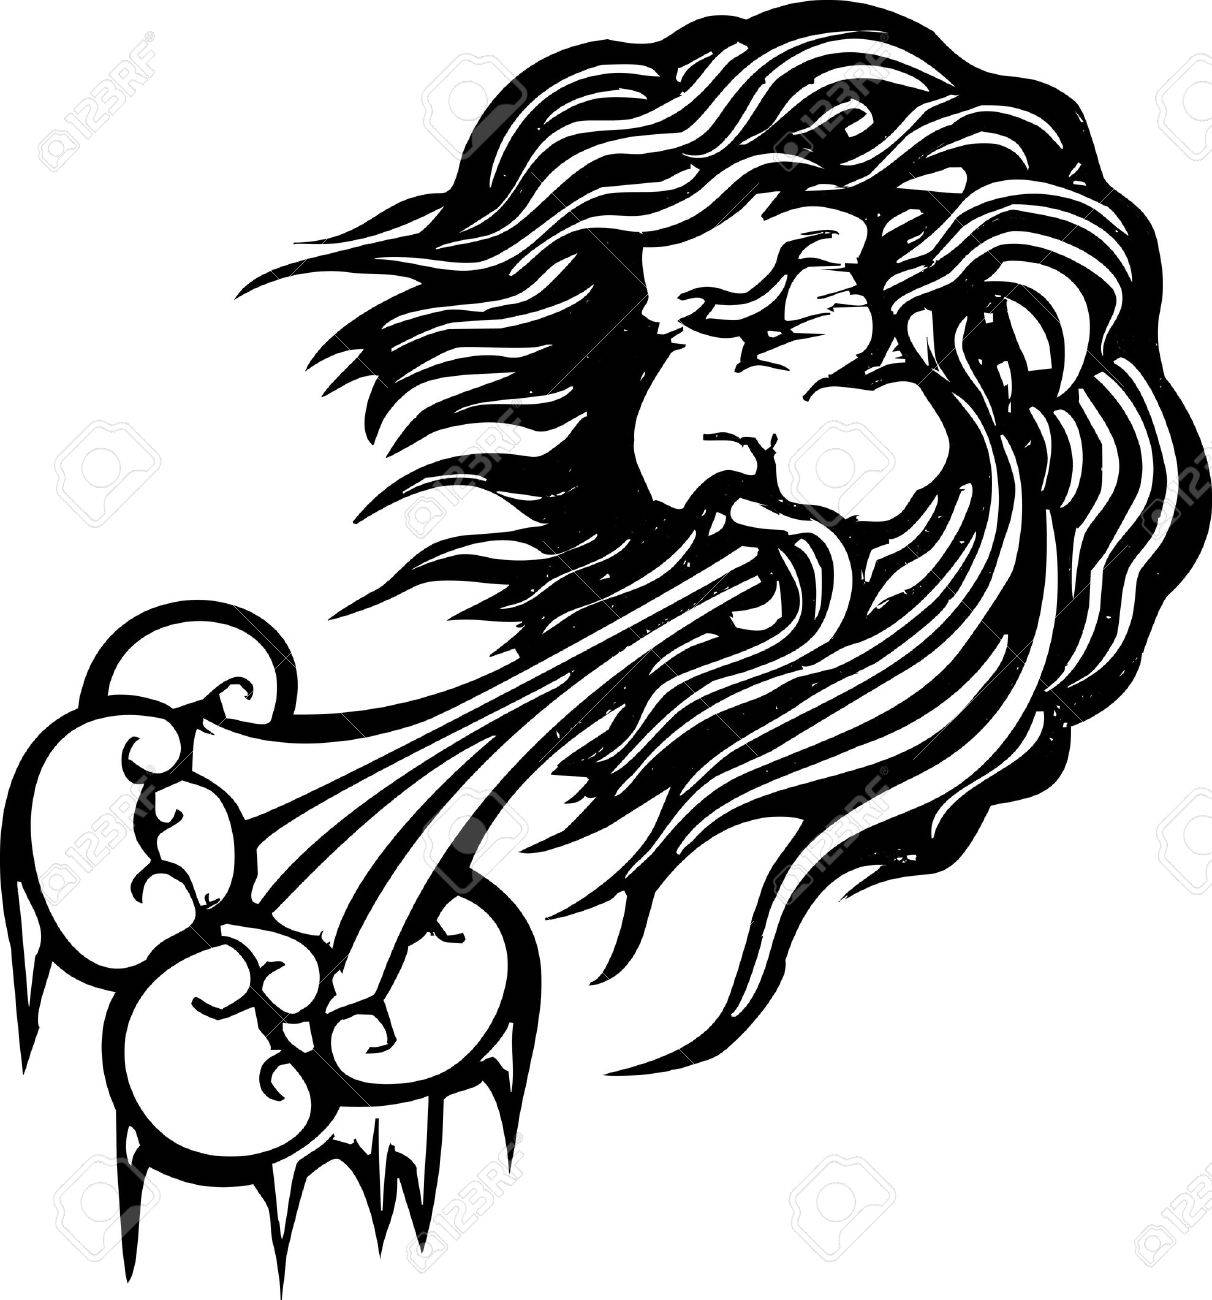 Woodcut style image of the the north wind face blowing cold air. Stock Vector - 24058578